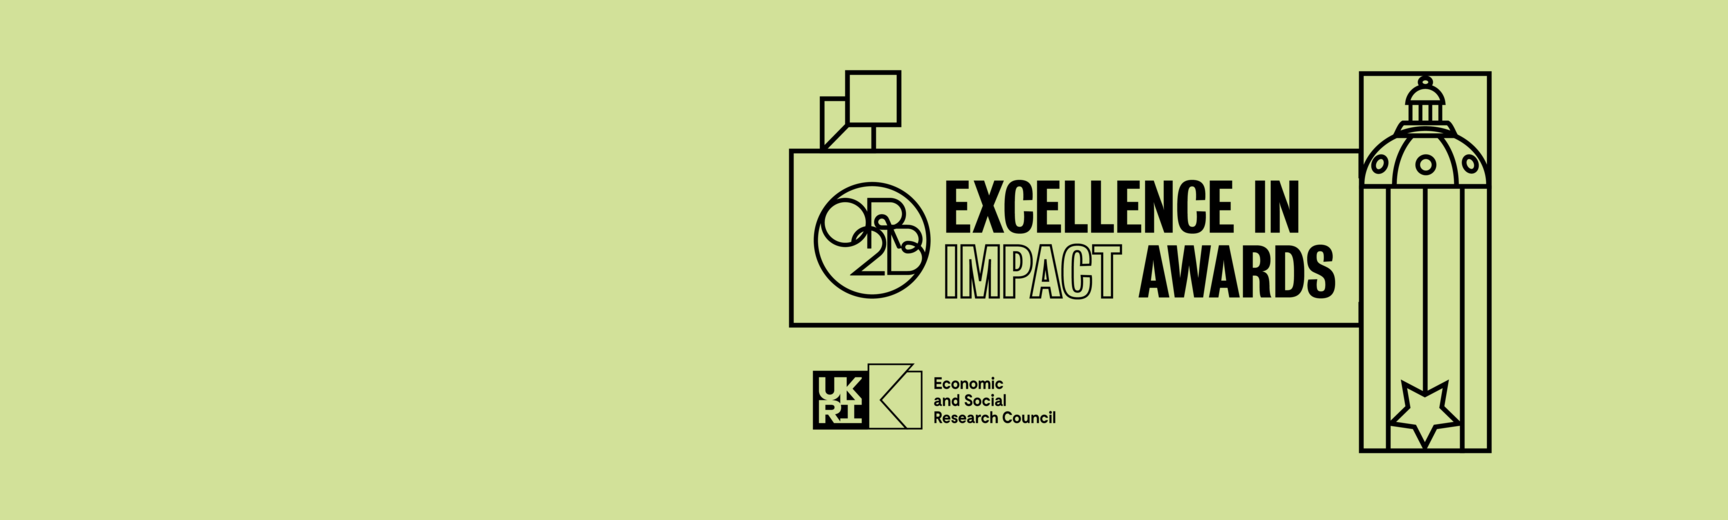 excellence in impact awards banner right